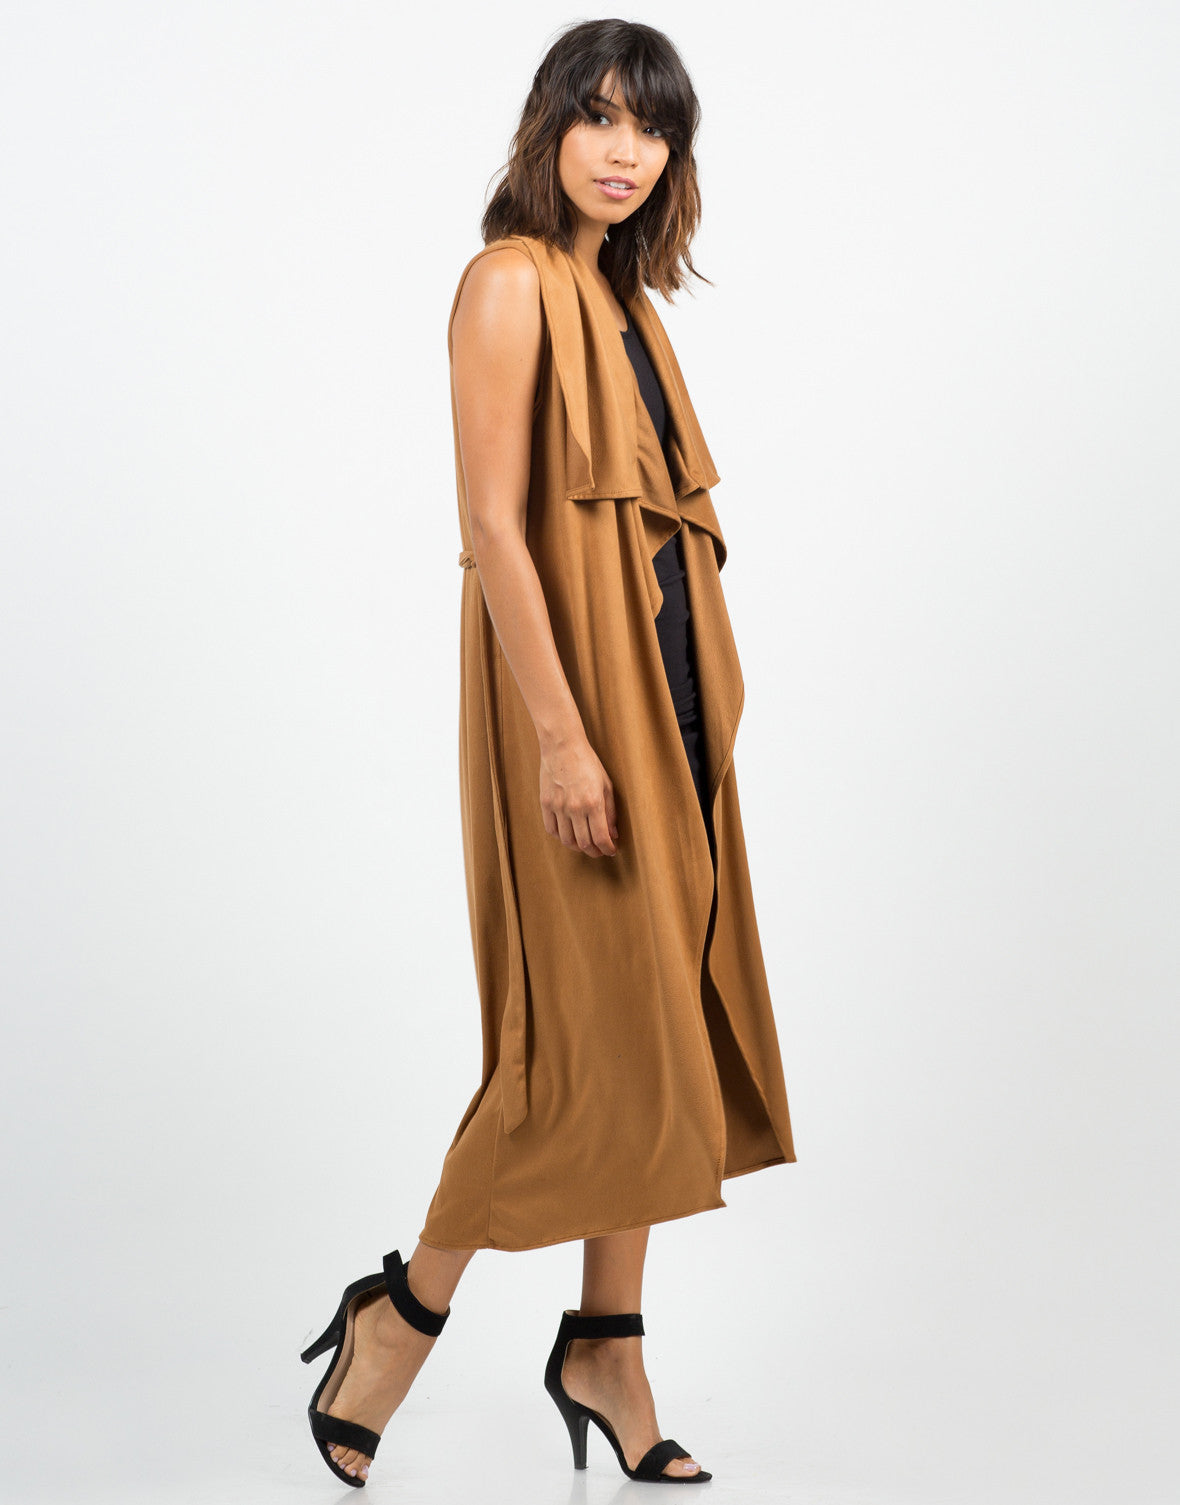 Drapey Camel Sleeveless Jacket - 2020AVE